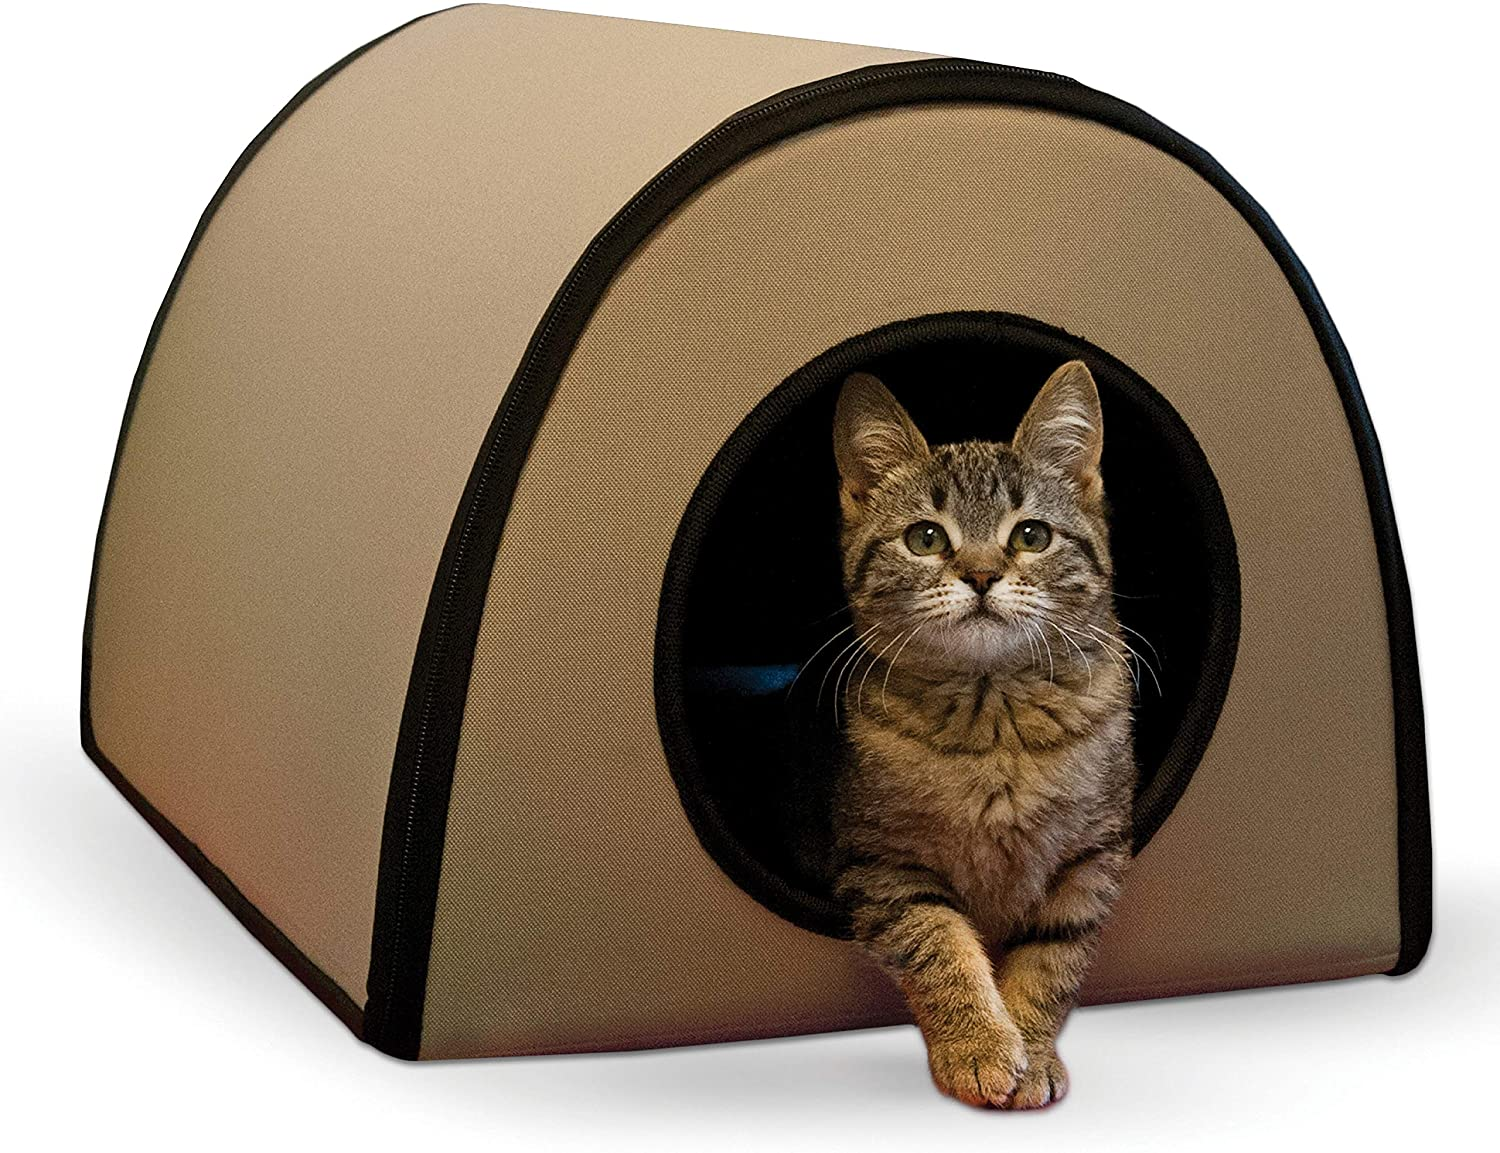 K H Pet Products Mod Thermo Kitty Heated Shelter Tan 21 X 14 X 13 25w Great For Outdoor Cats Pet Supplies